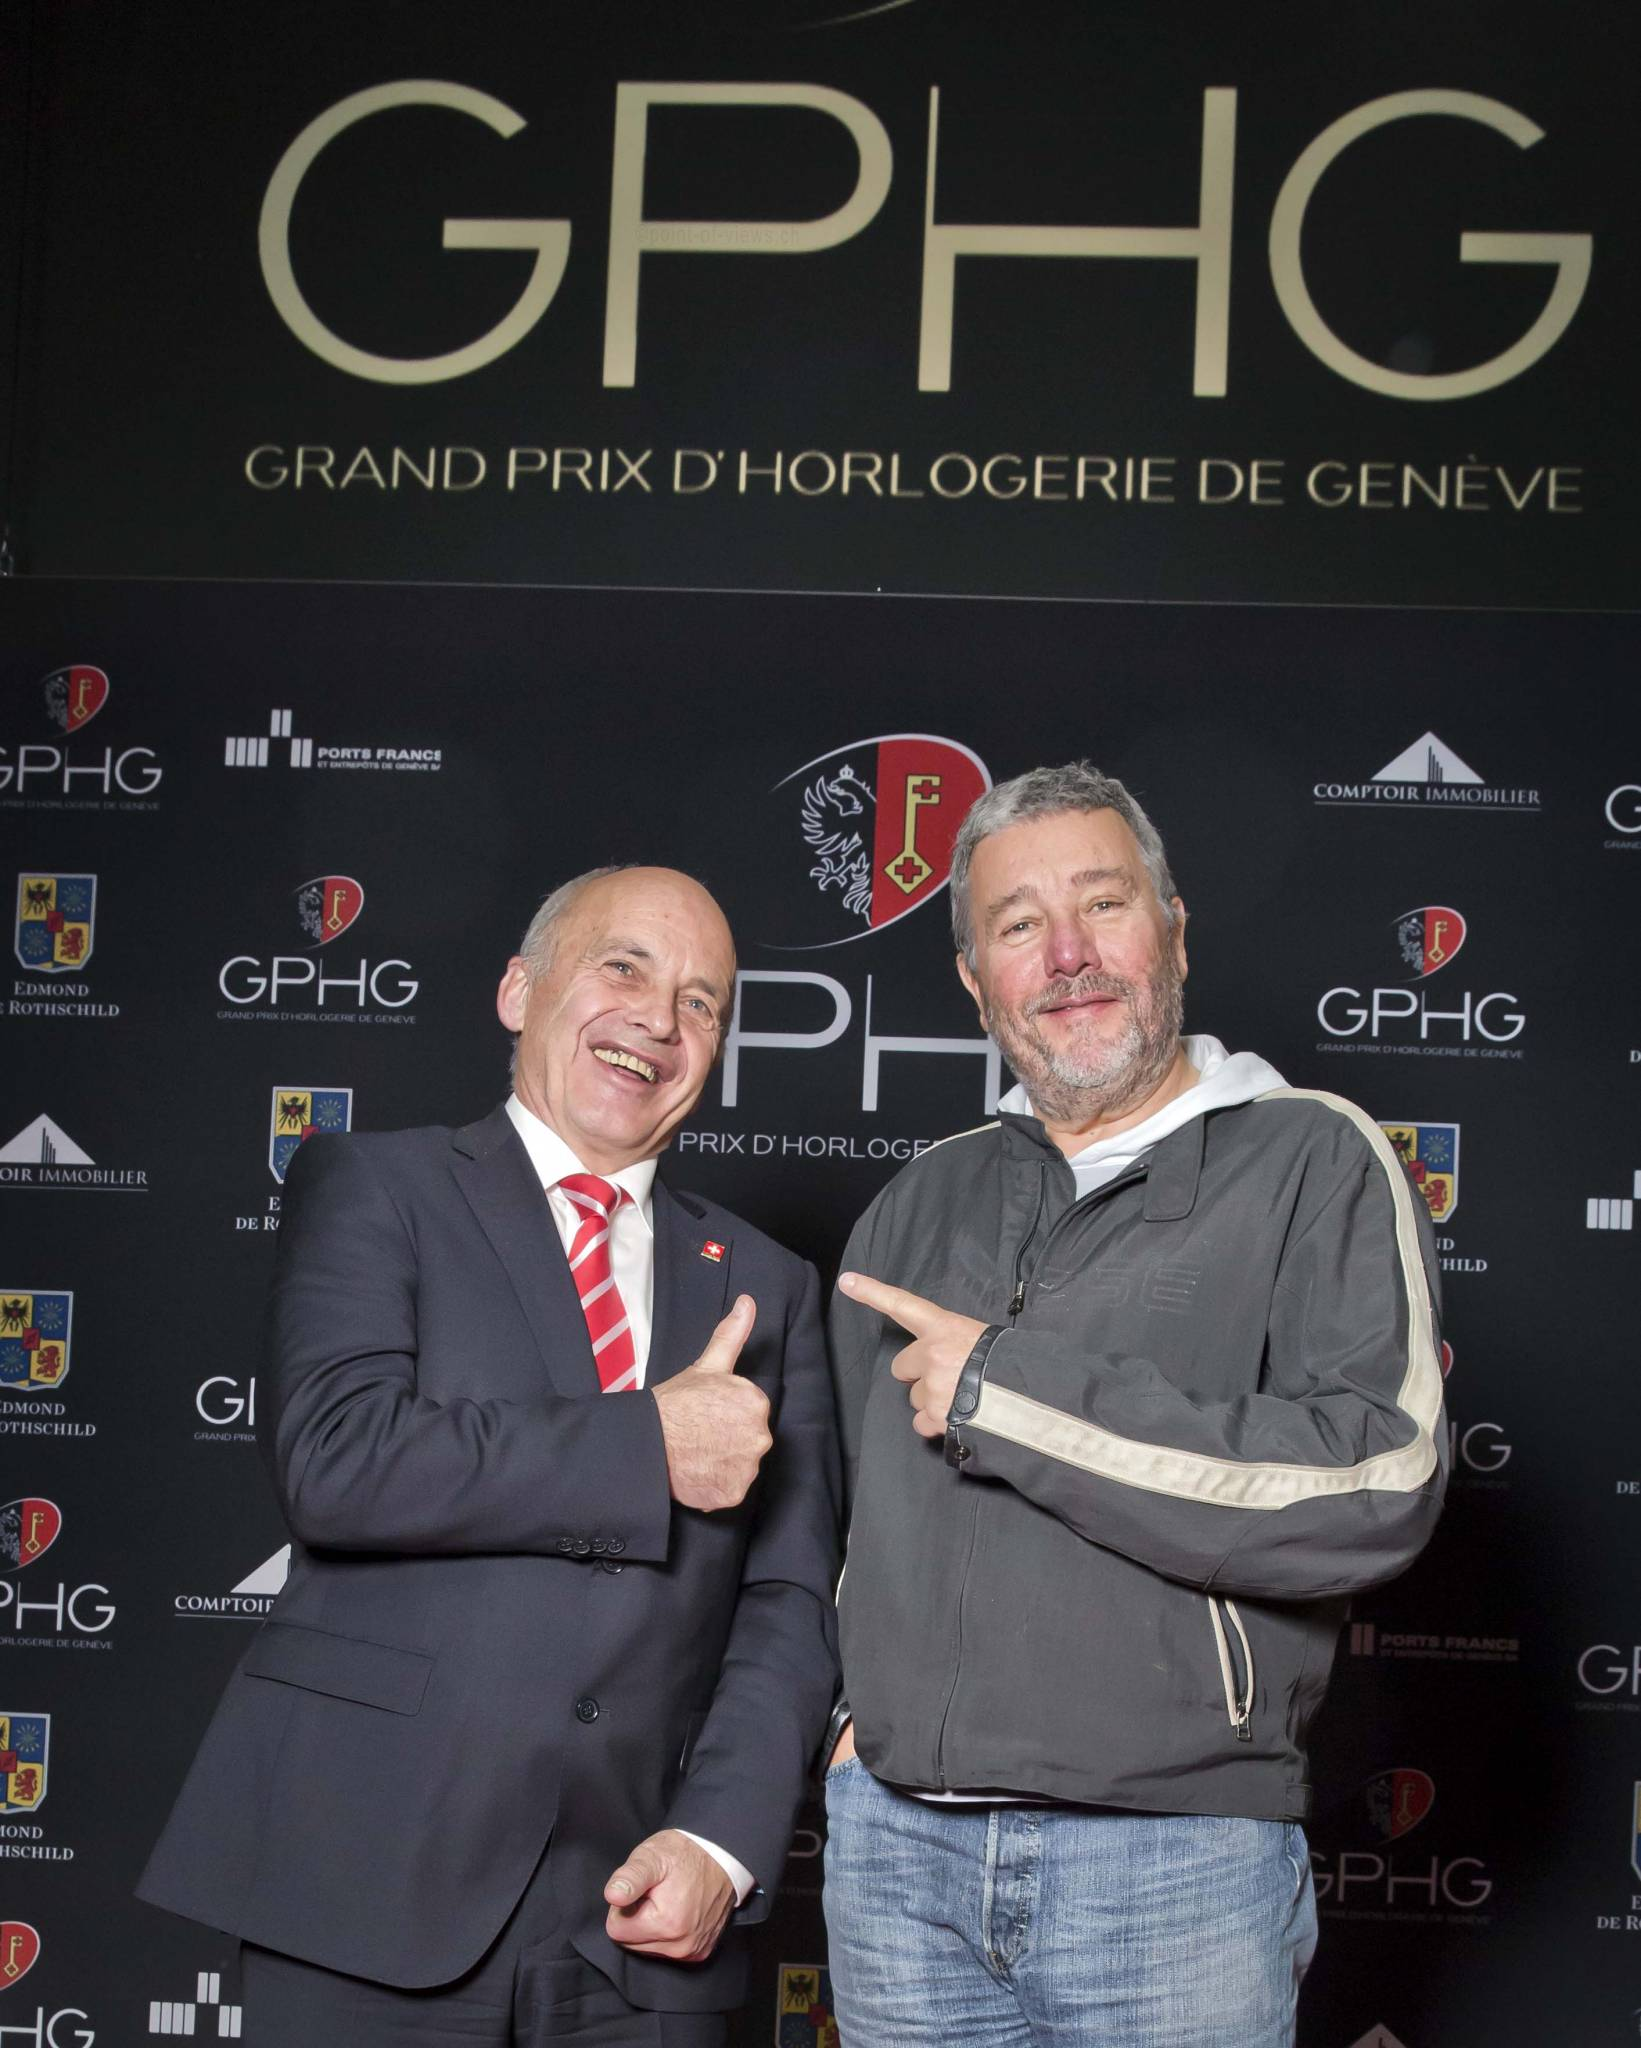 Ueli Maurer, président of the Swiss Confédération and Philippe Starck, members of the jury 2013